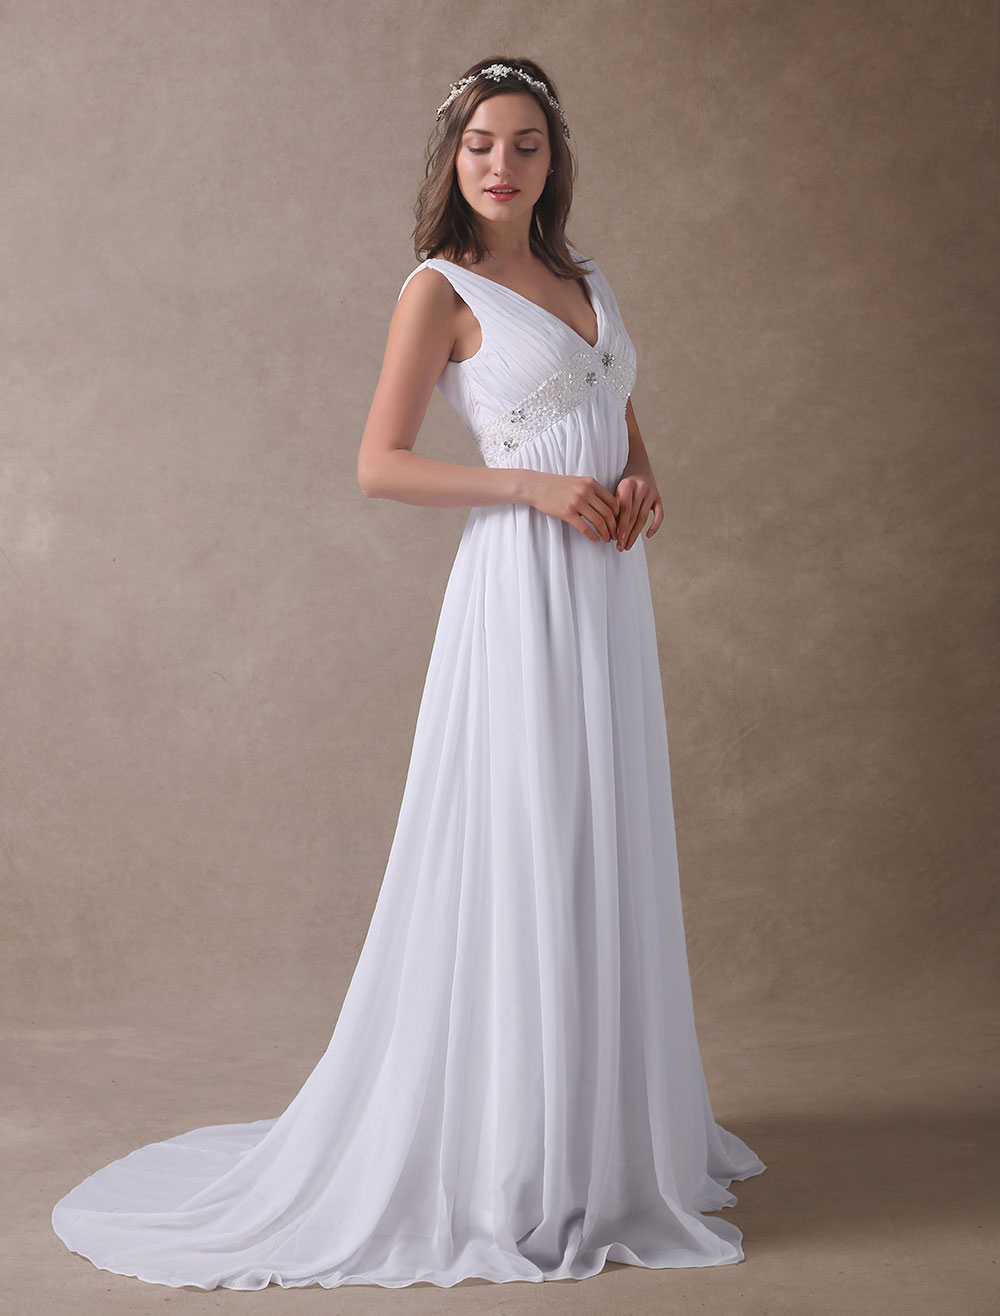 Beaded Empire Waist Wedding Dress